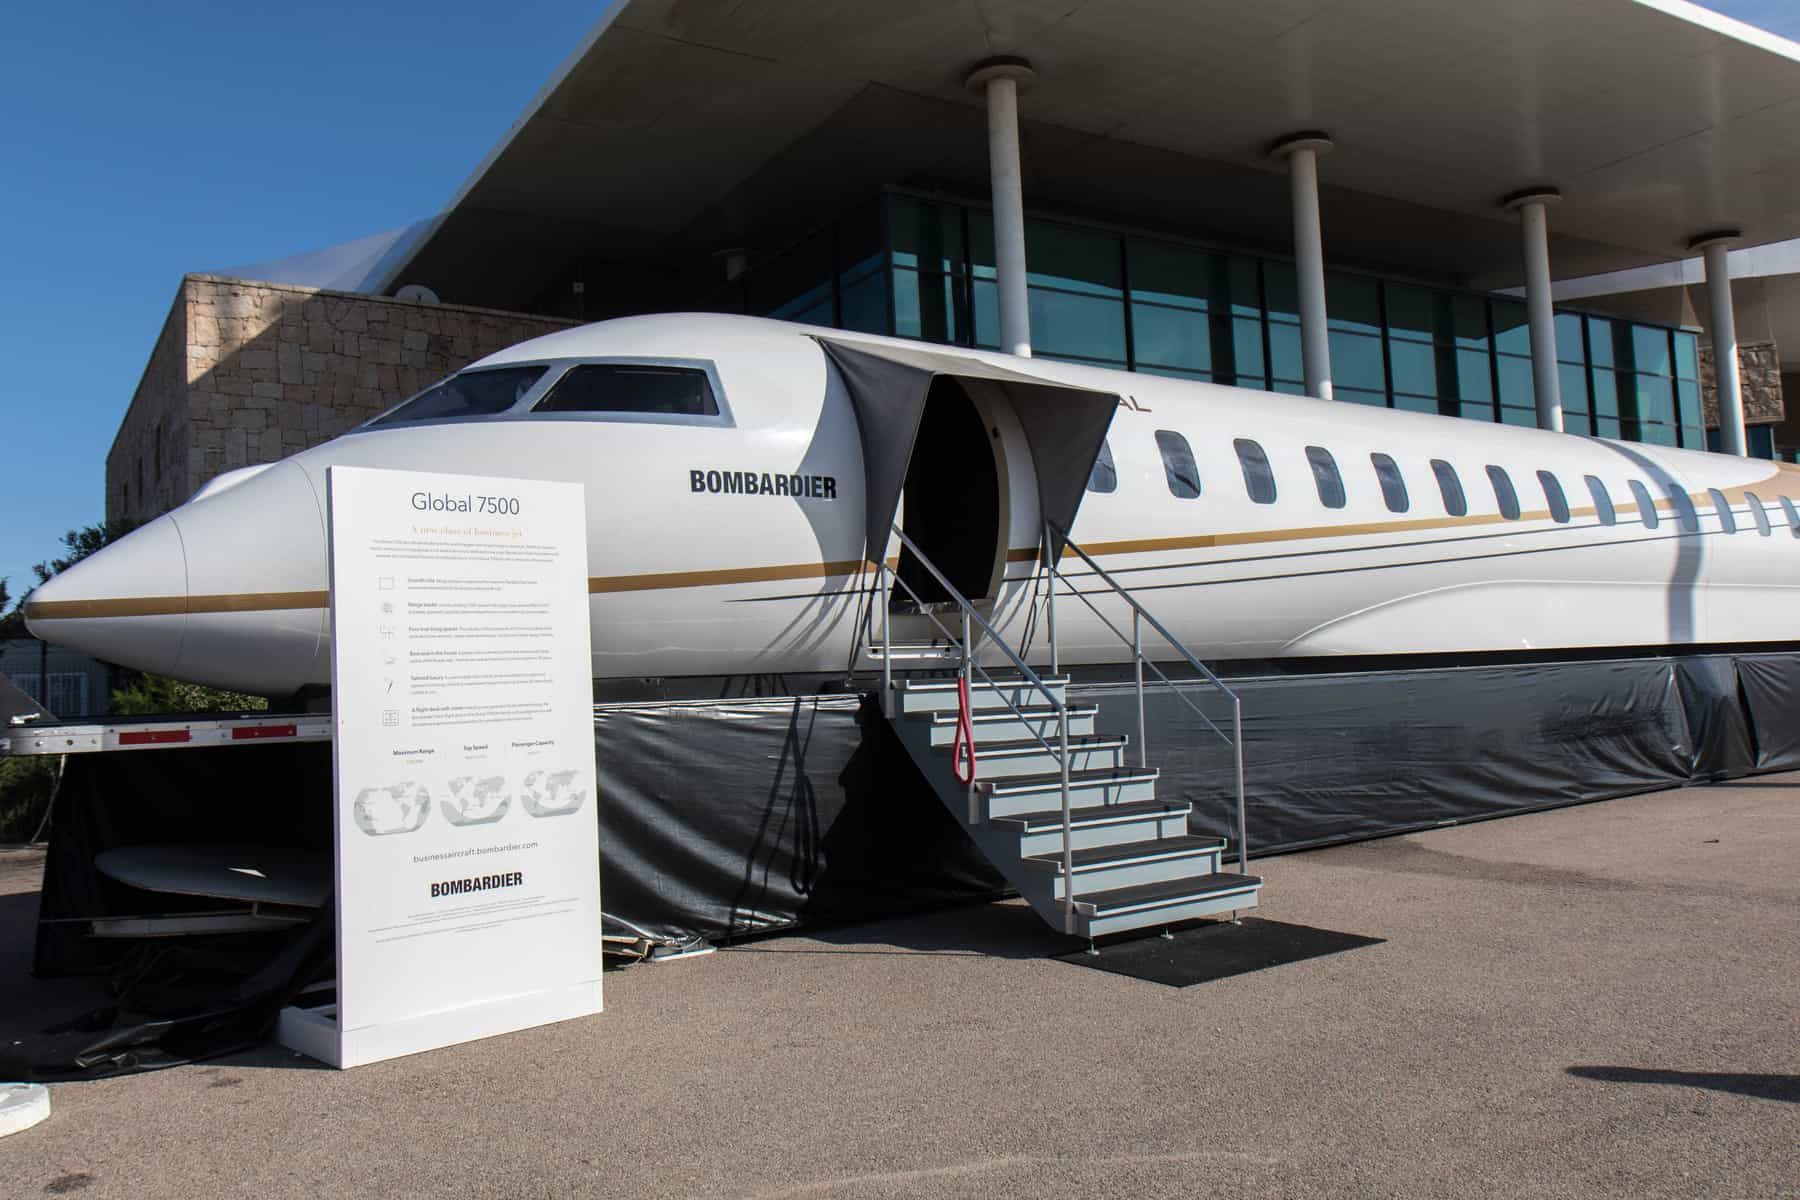 Bombardier Global 7500 mock up